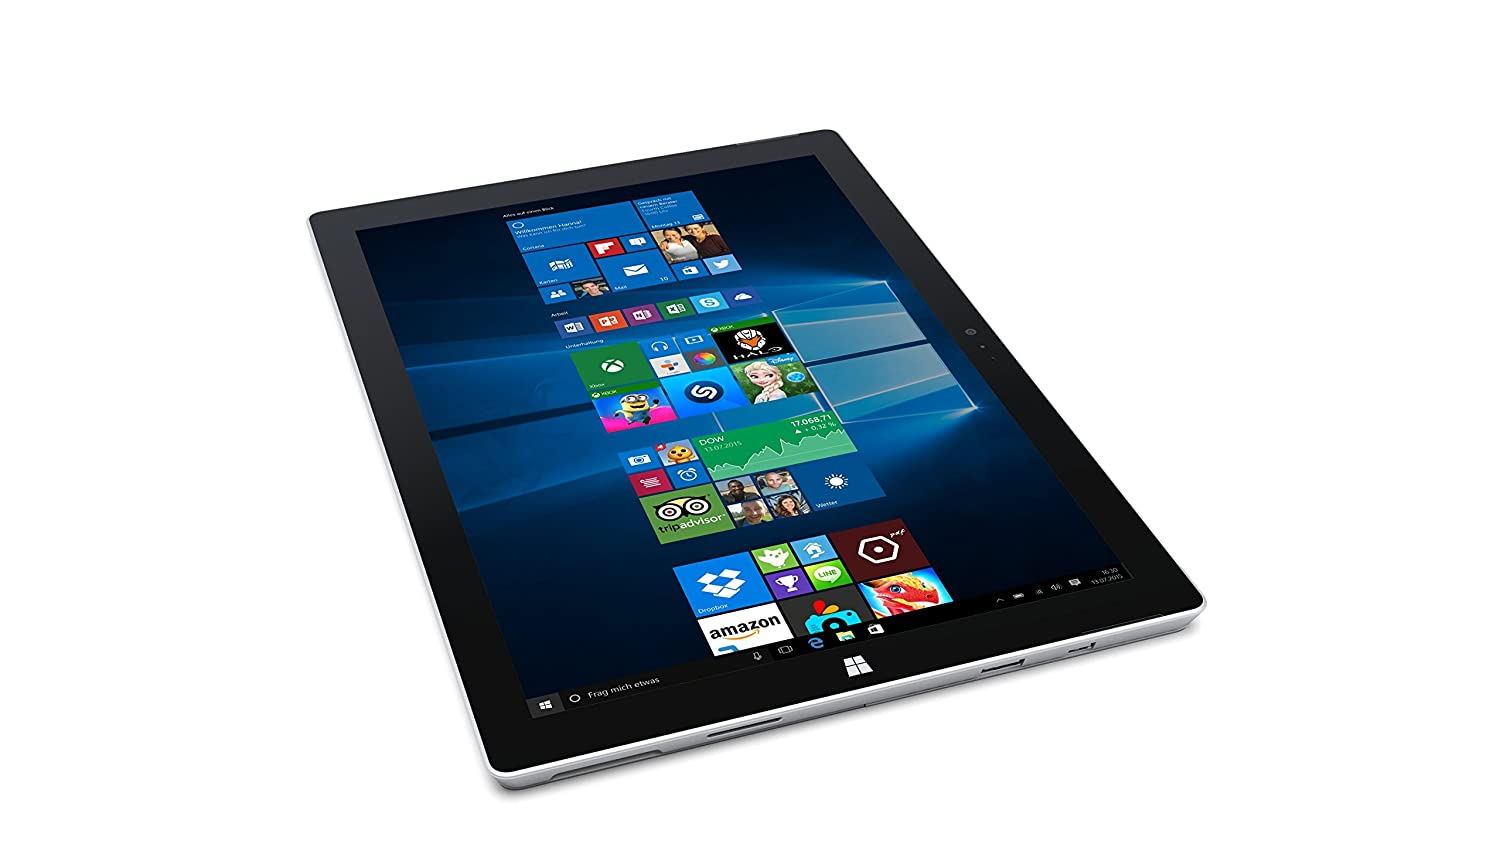 Microsoft Surface Pro 3 5d2 00019 30 Cm Tablet Pc 4 Core I7 8gb 256gb Computer Zubehr